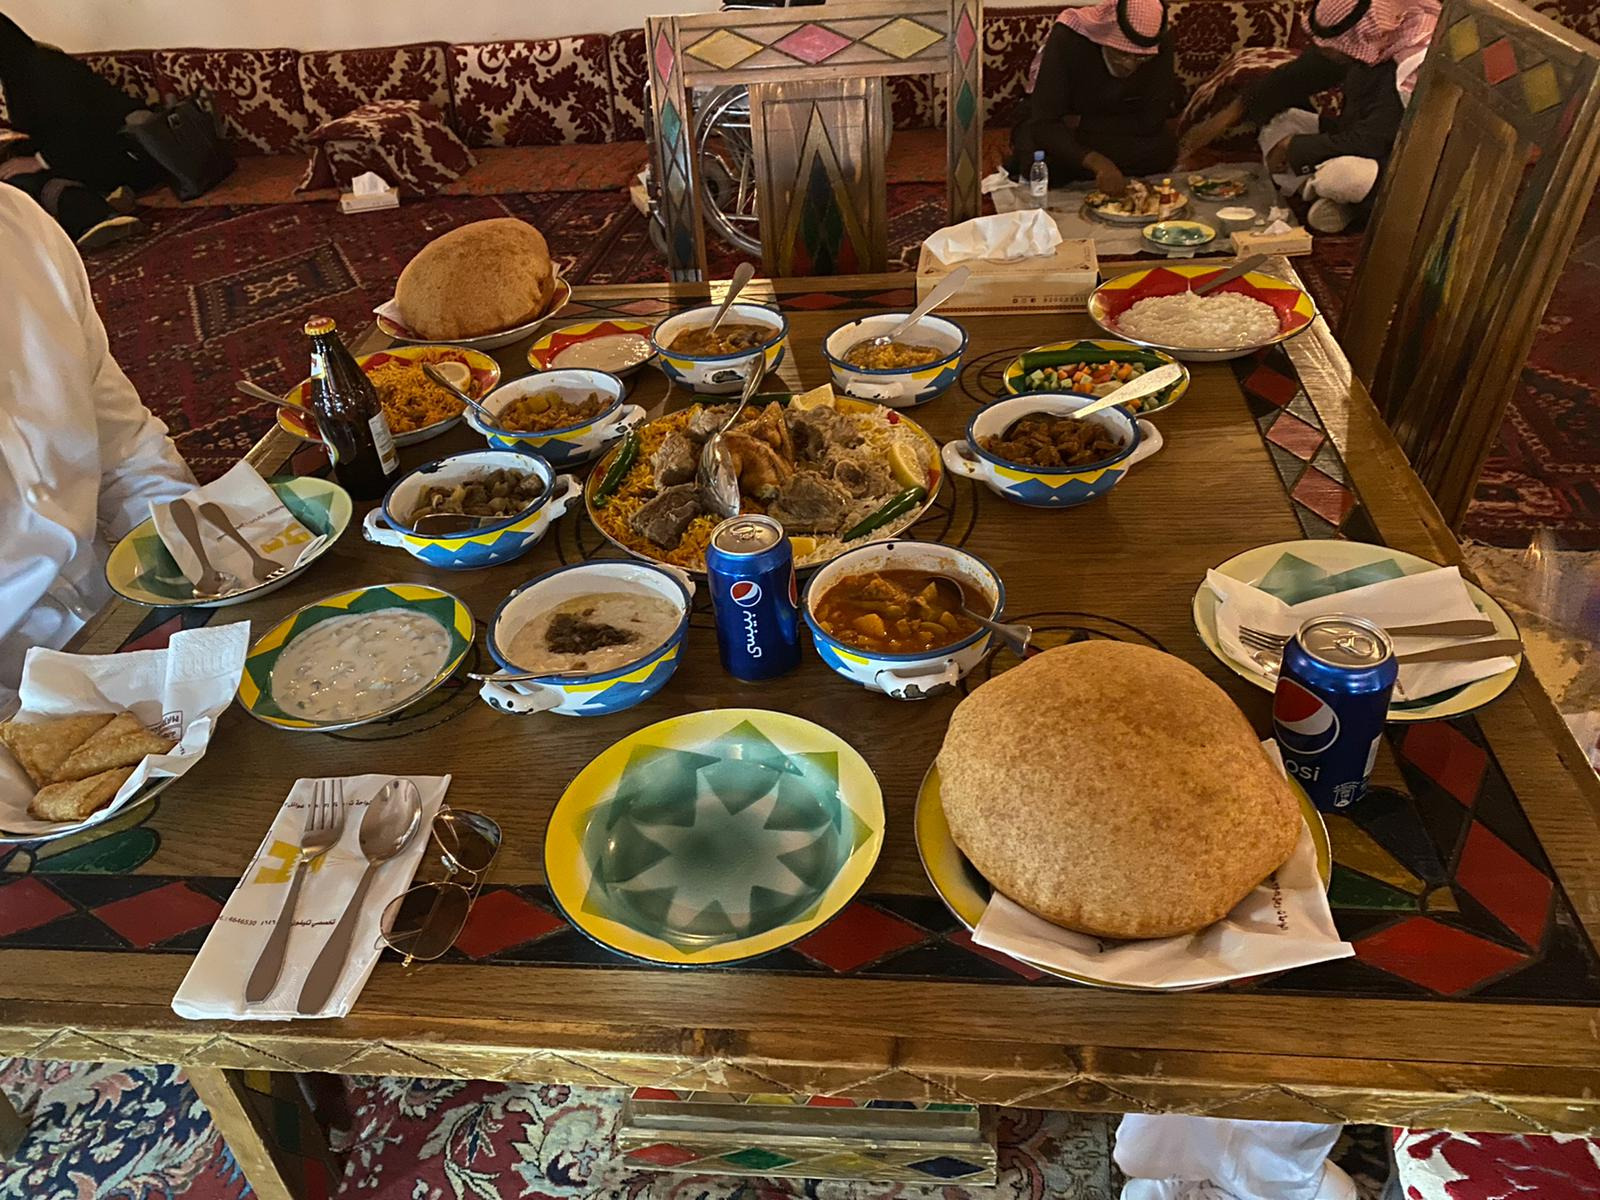 Middle Eastern food, laid out on a table in a restaurant